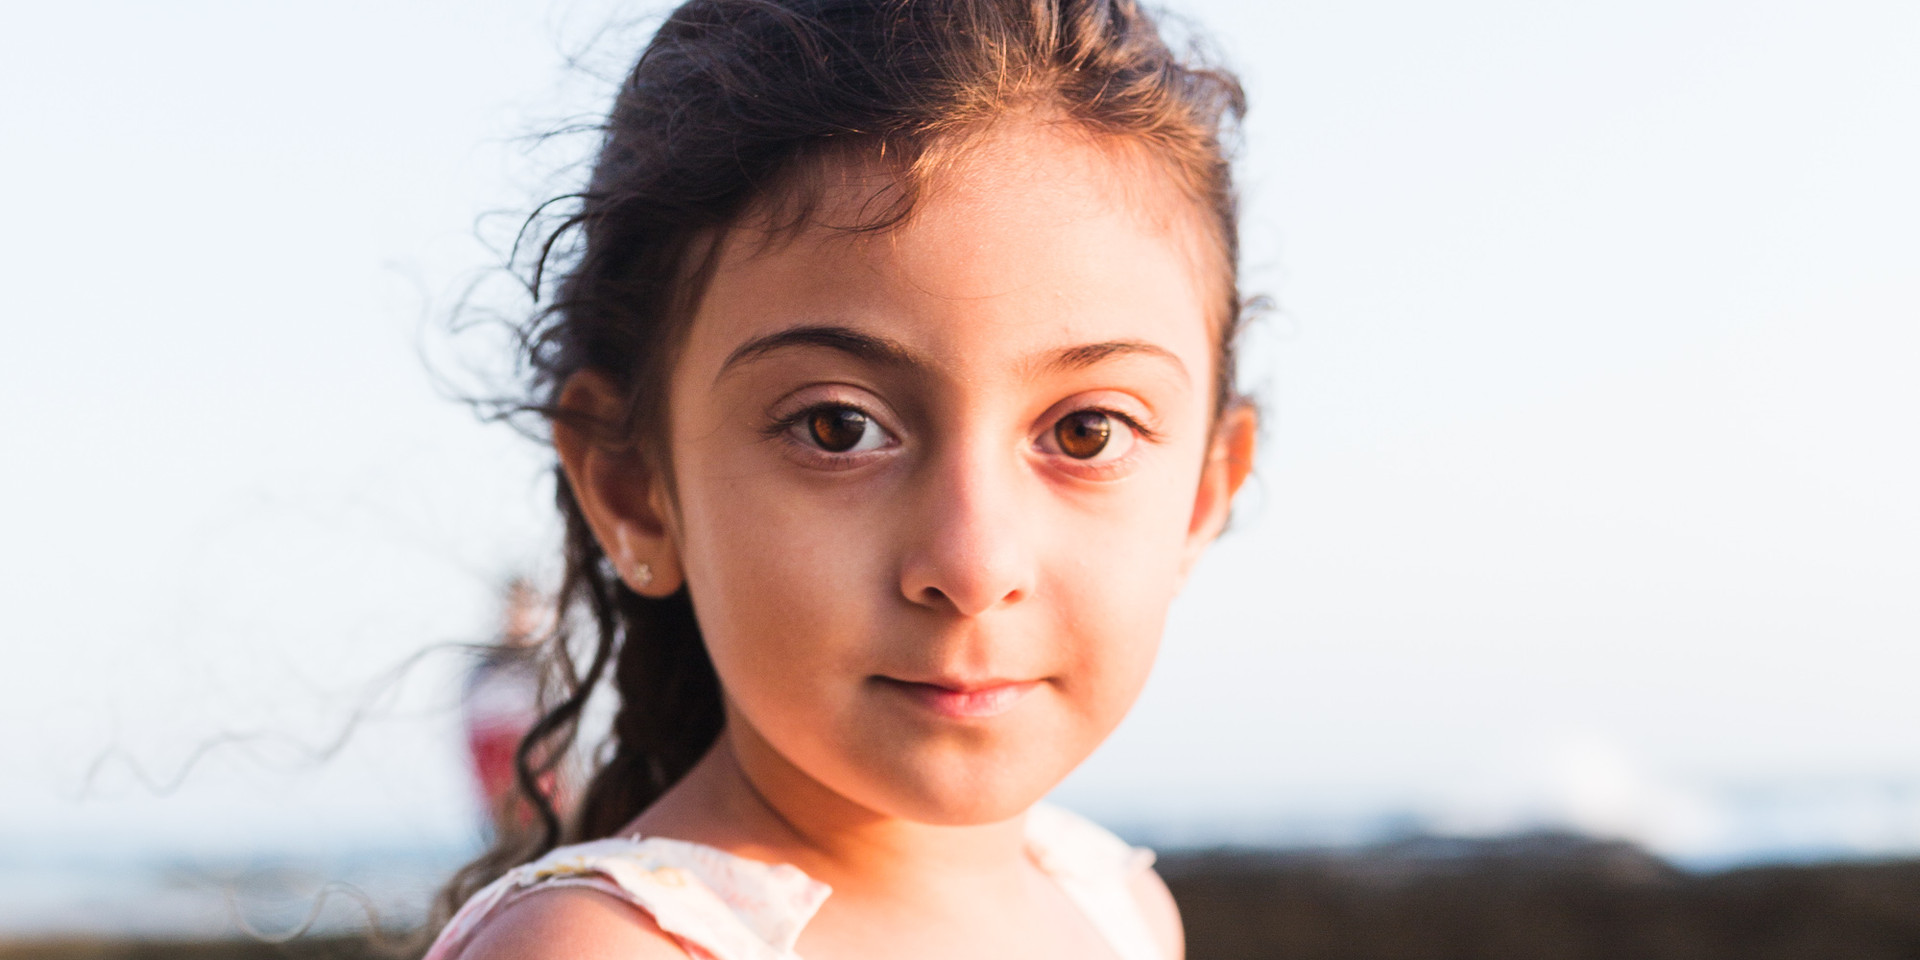 Outdoor photoshoot with a cute little girl in the coast of california